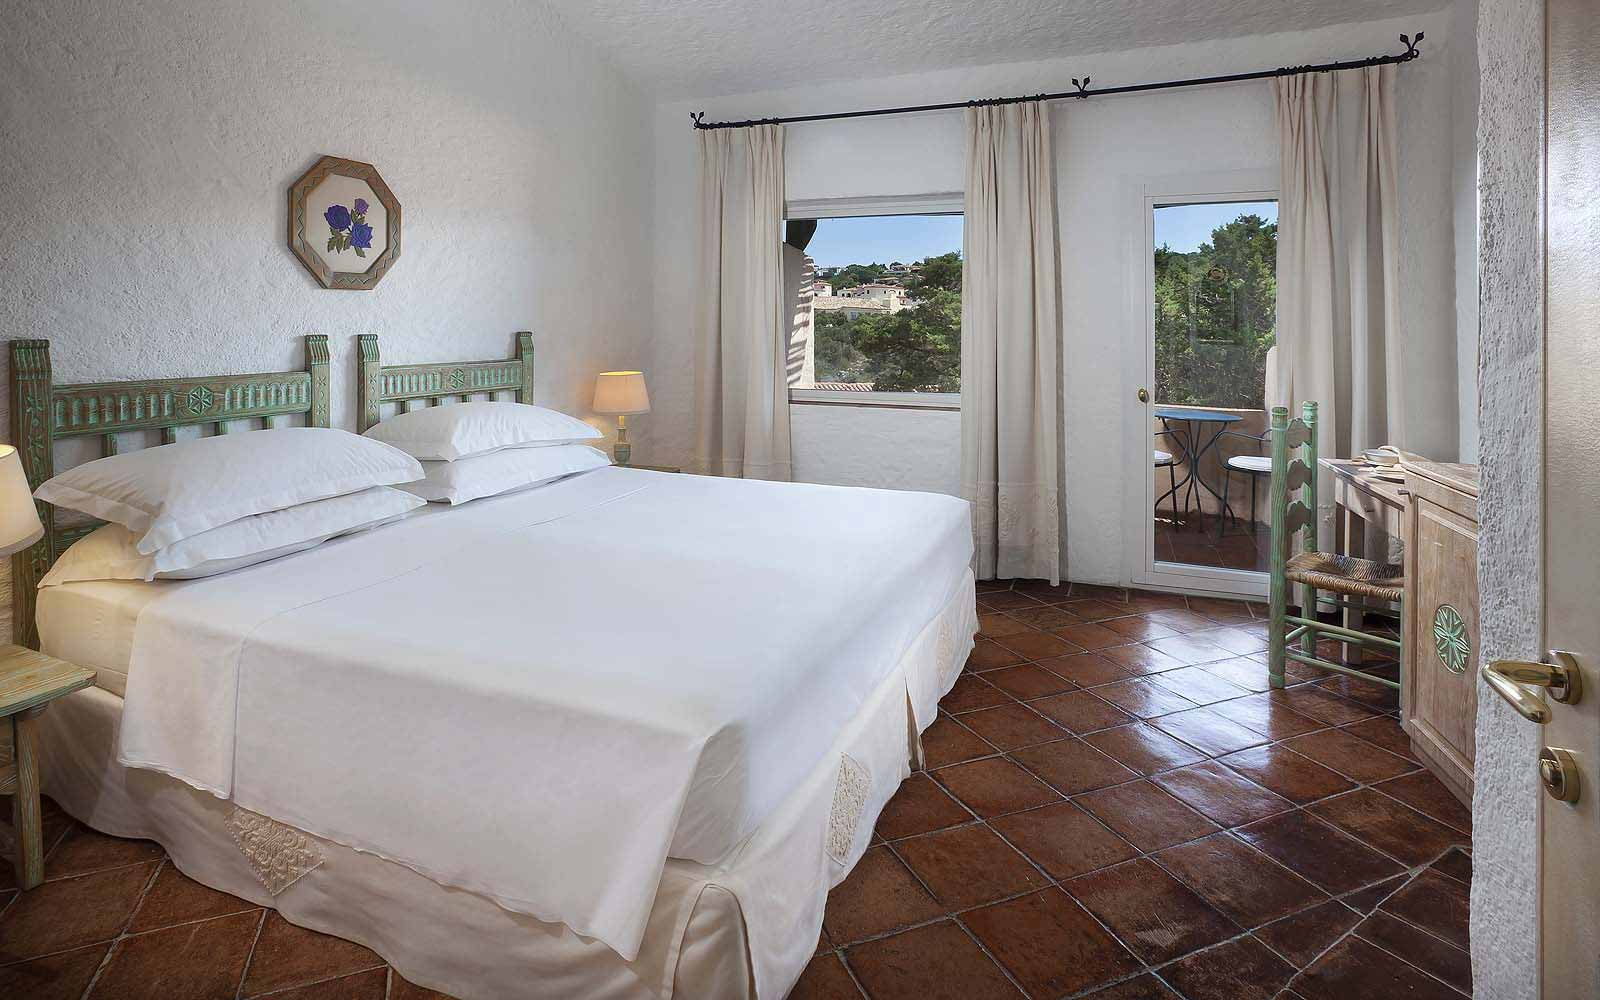 A Superior Room with pool view at the Hotel Cervo